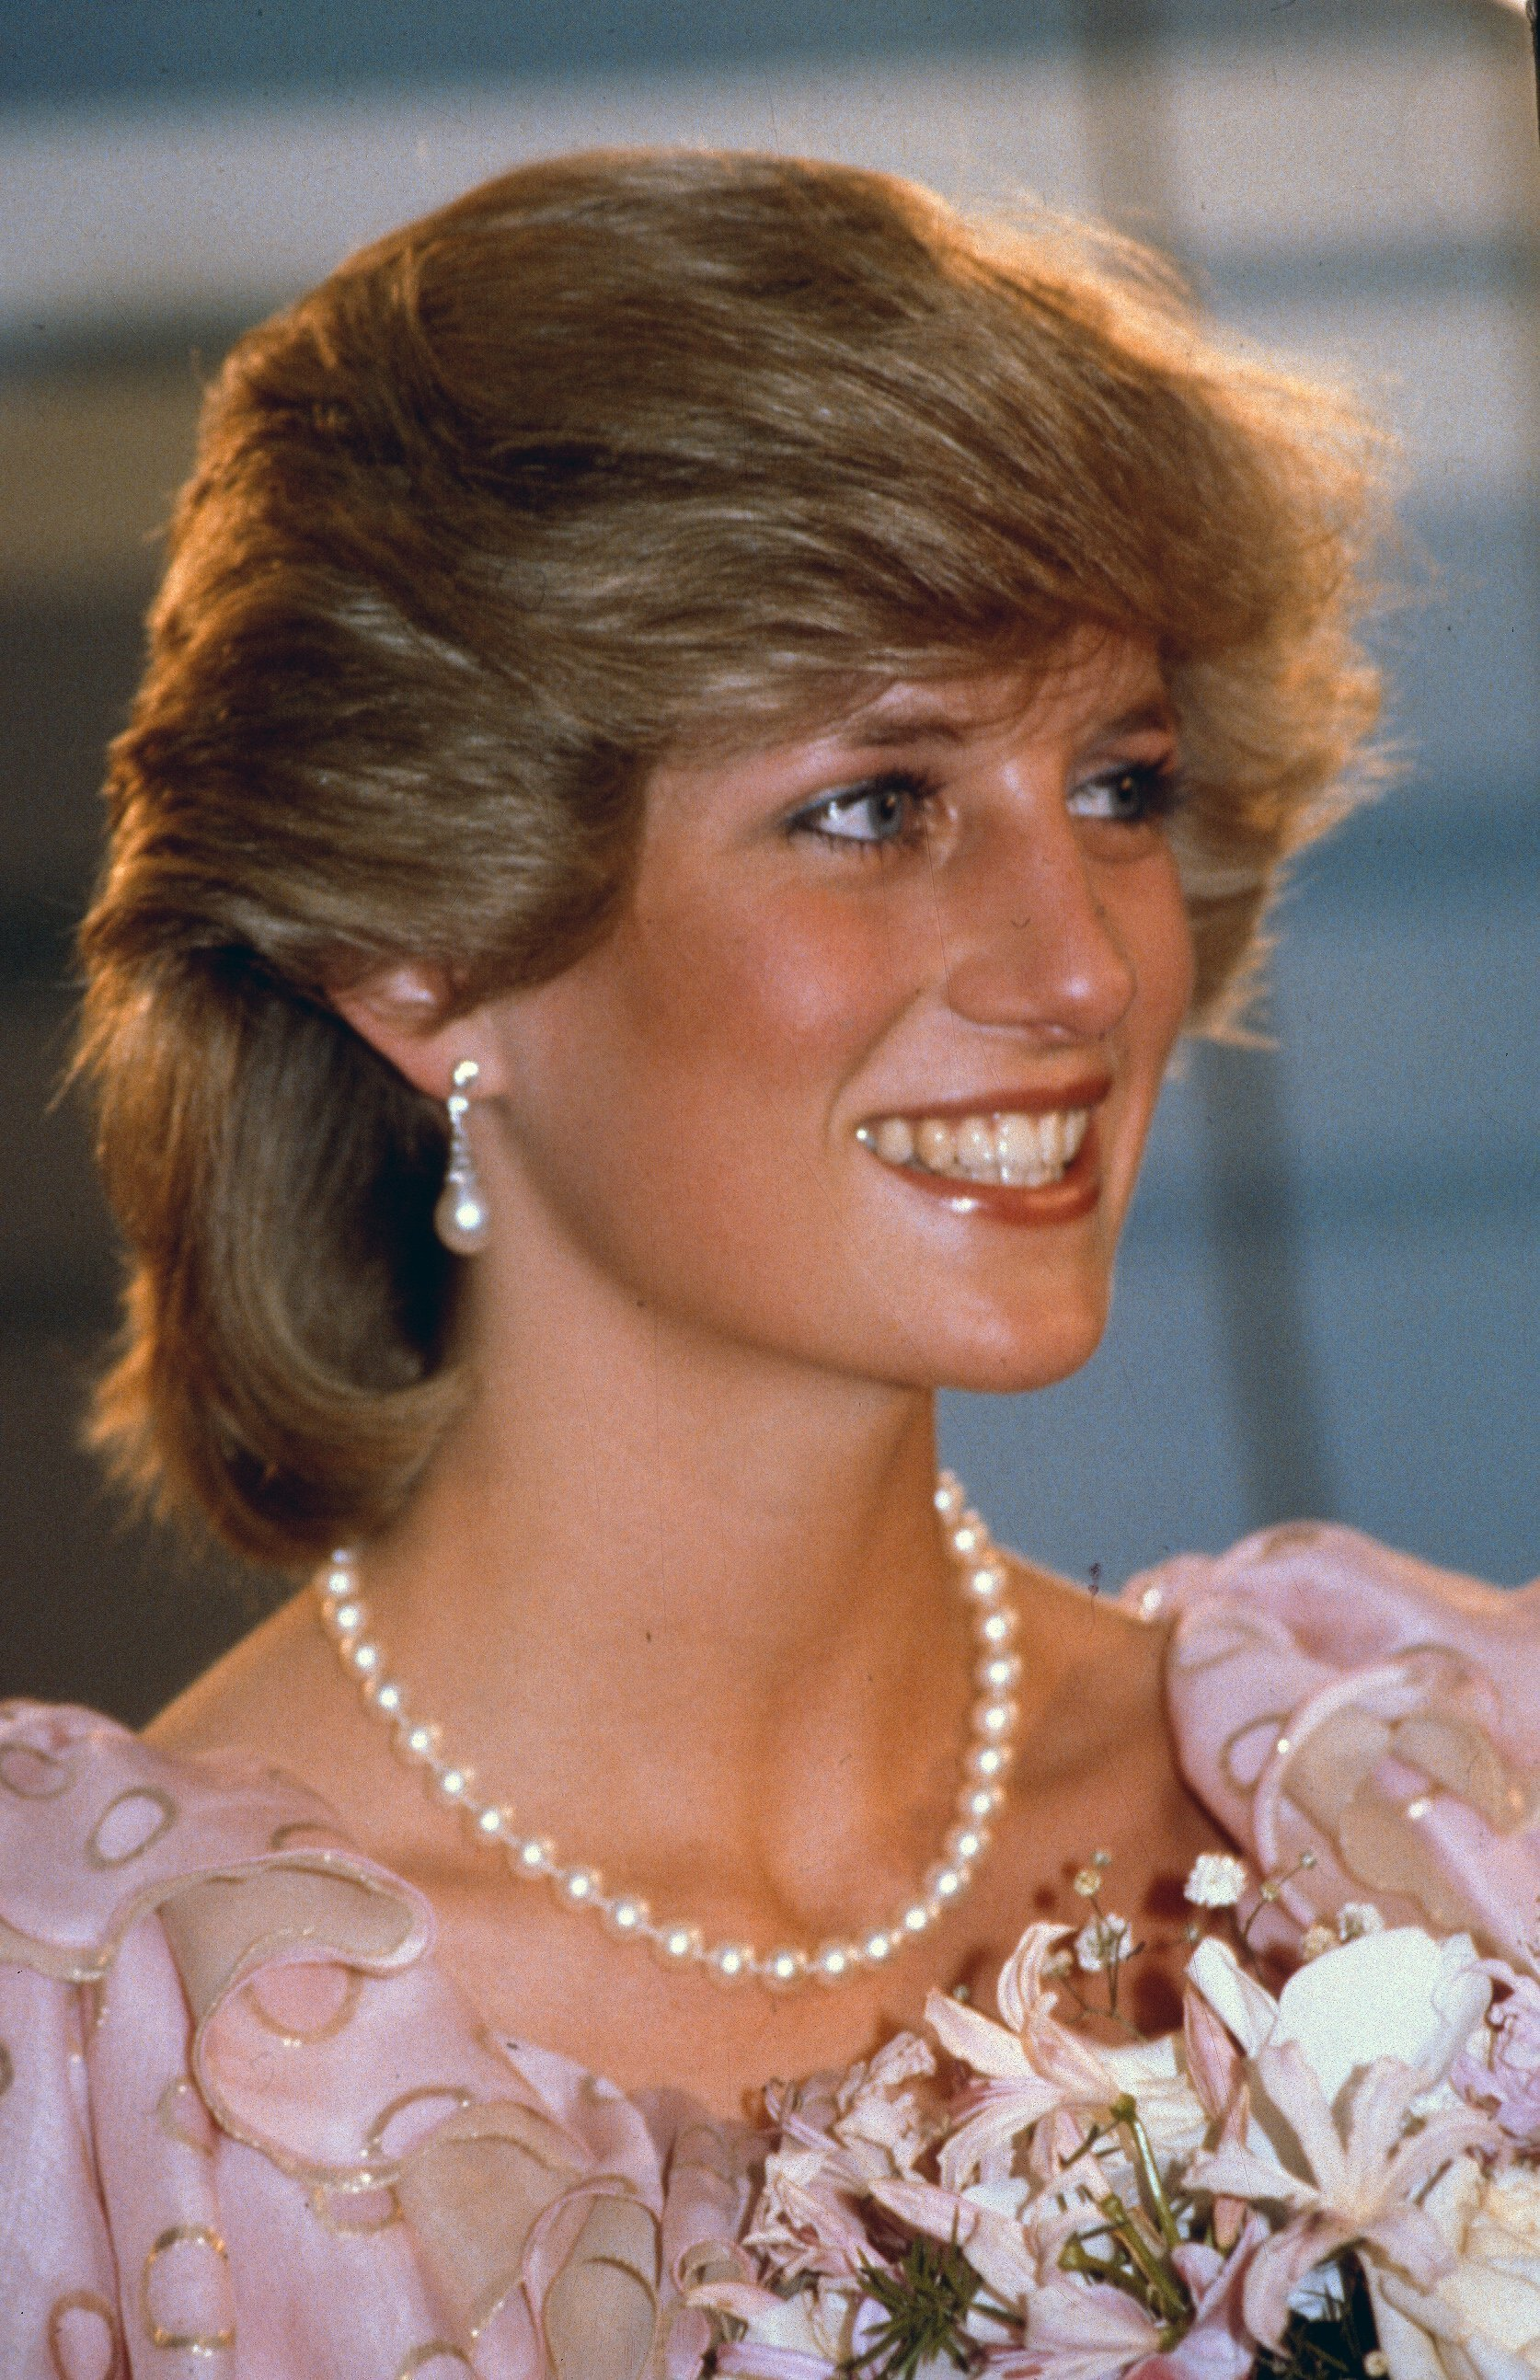 Princess Diana on April 14, 1983, in Melbourne, Australia | Source: Getty Images